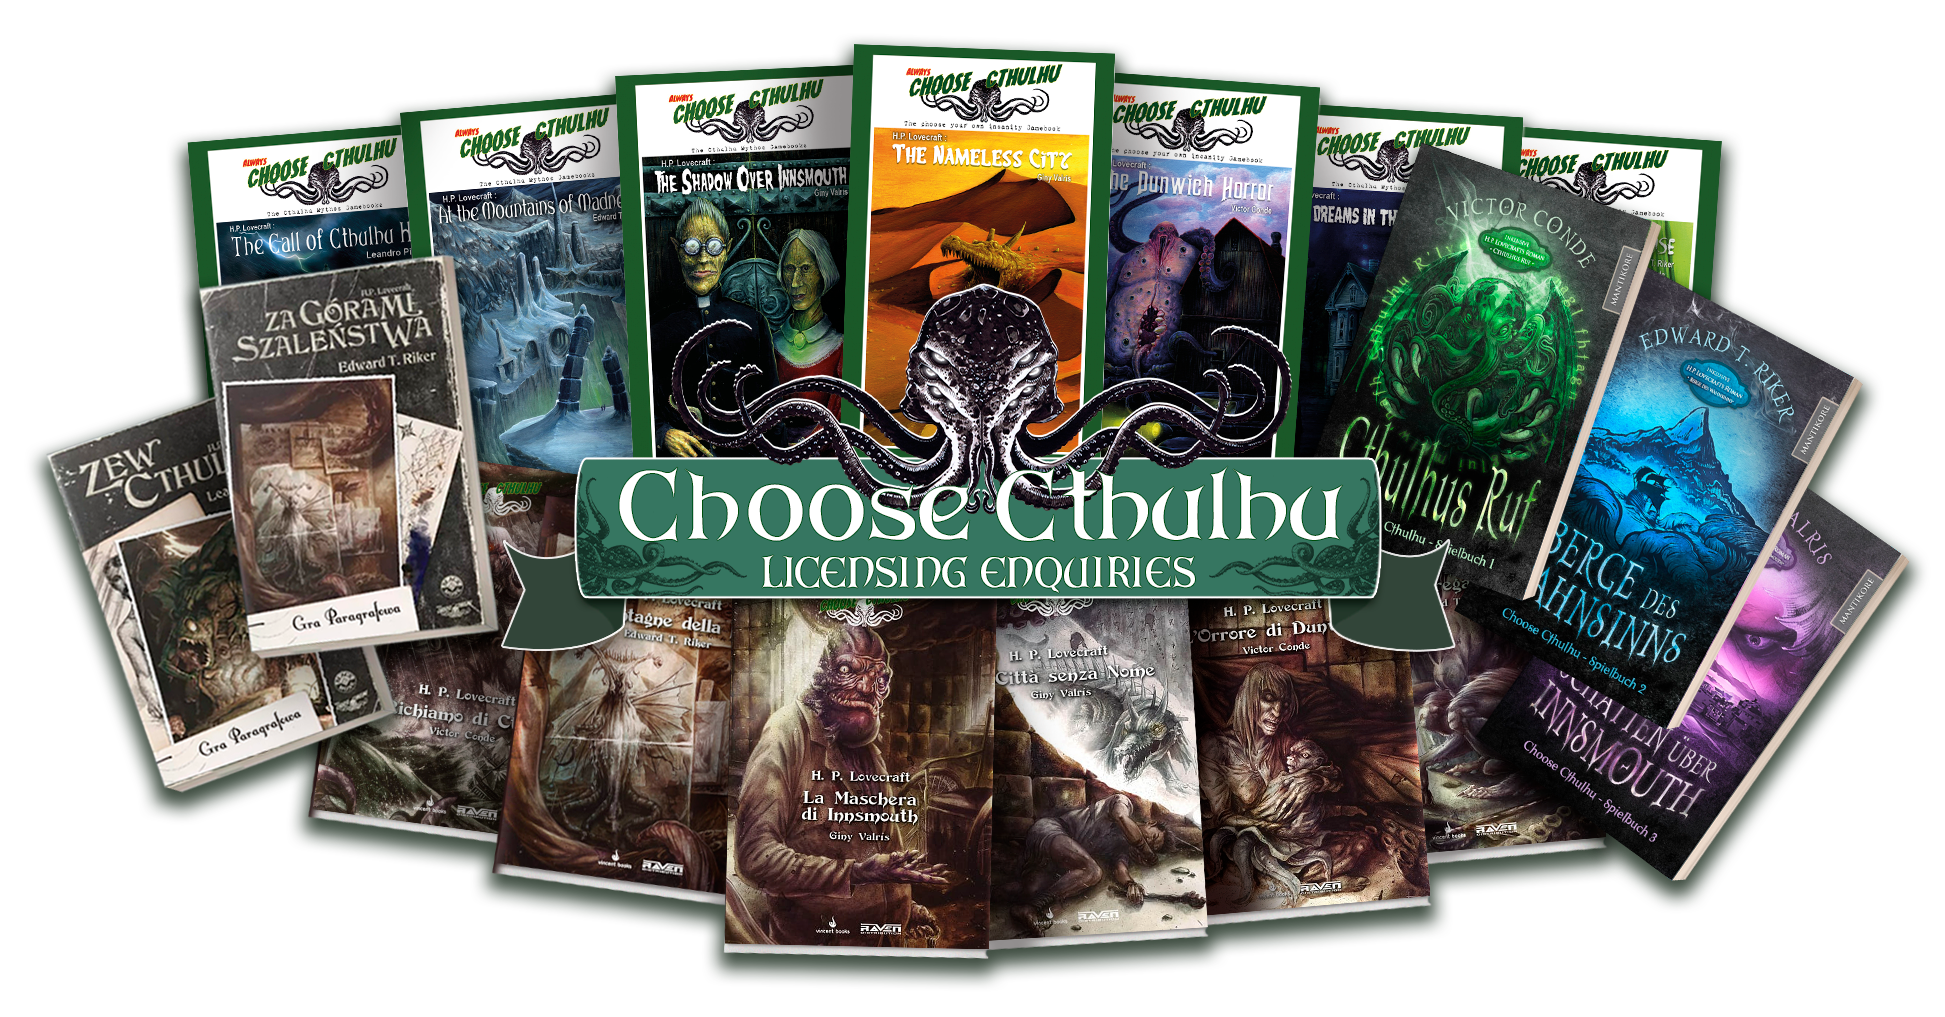 Choose Cthulhu Gamebooks, the Cult of Cthulhu